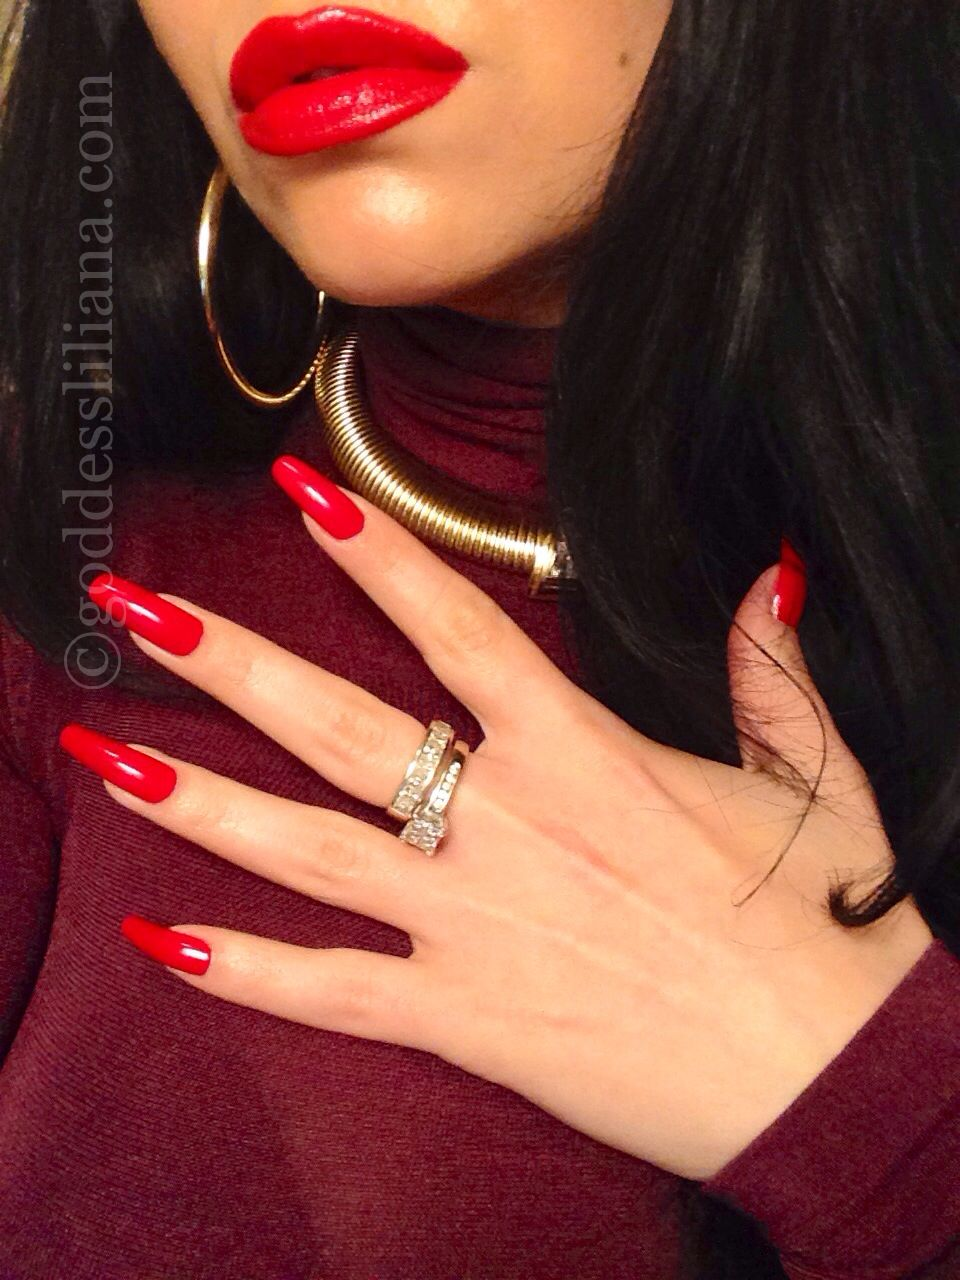 nails fetish red